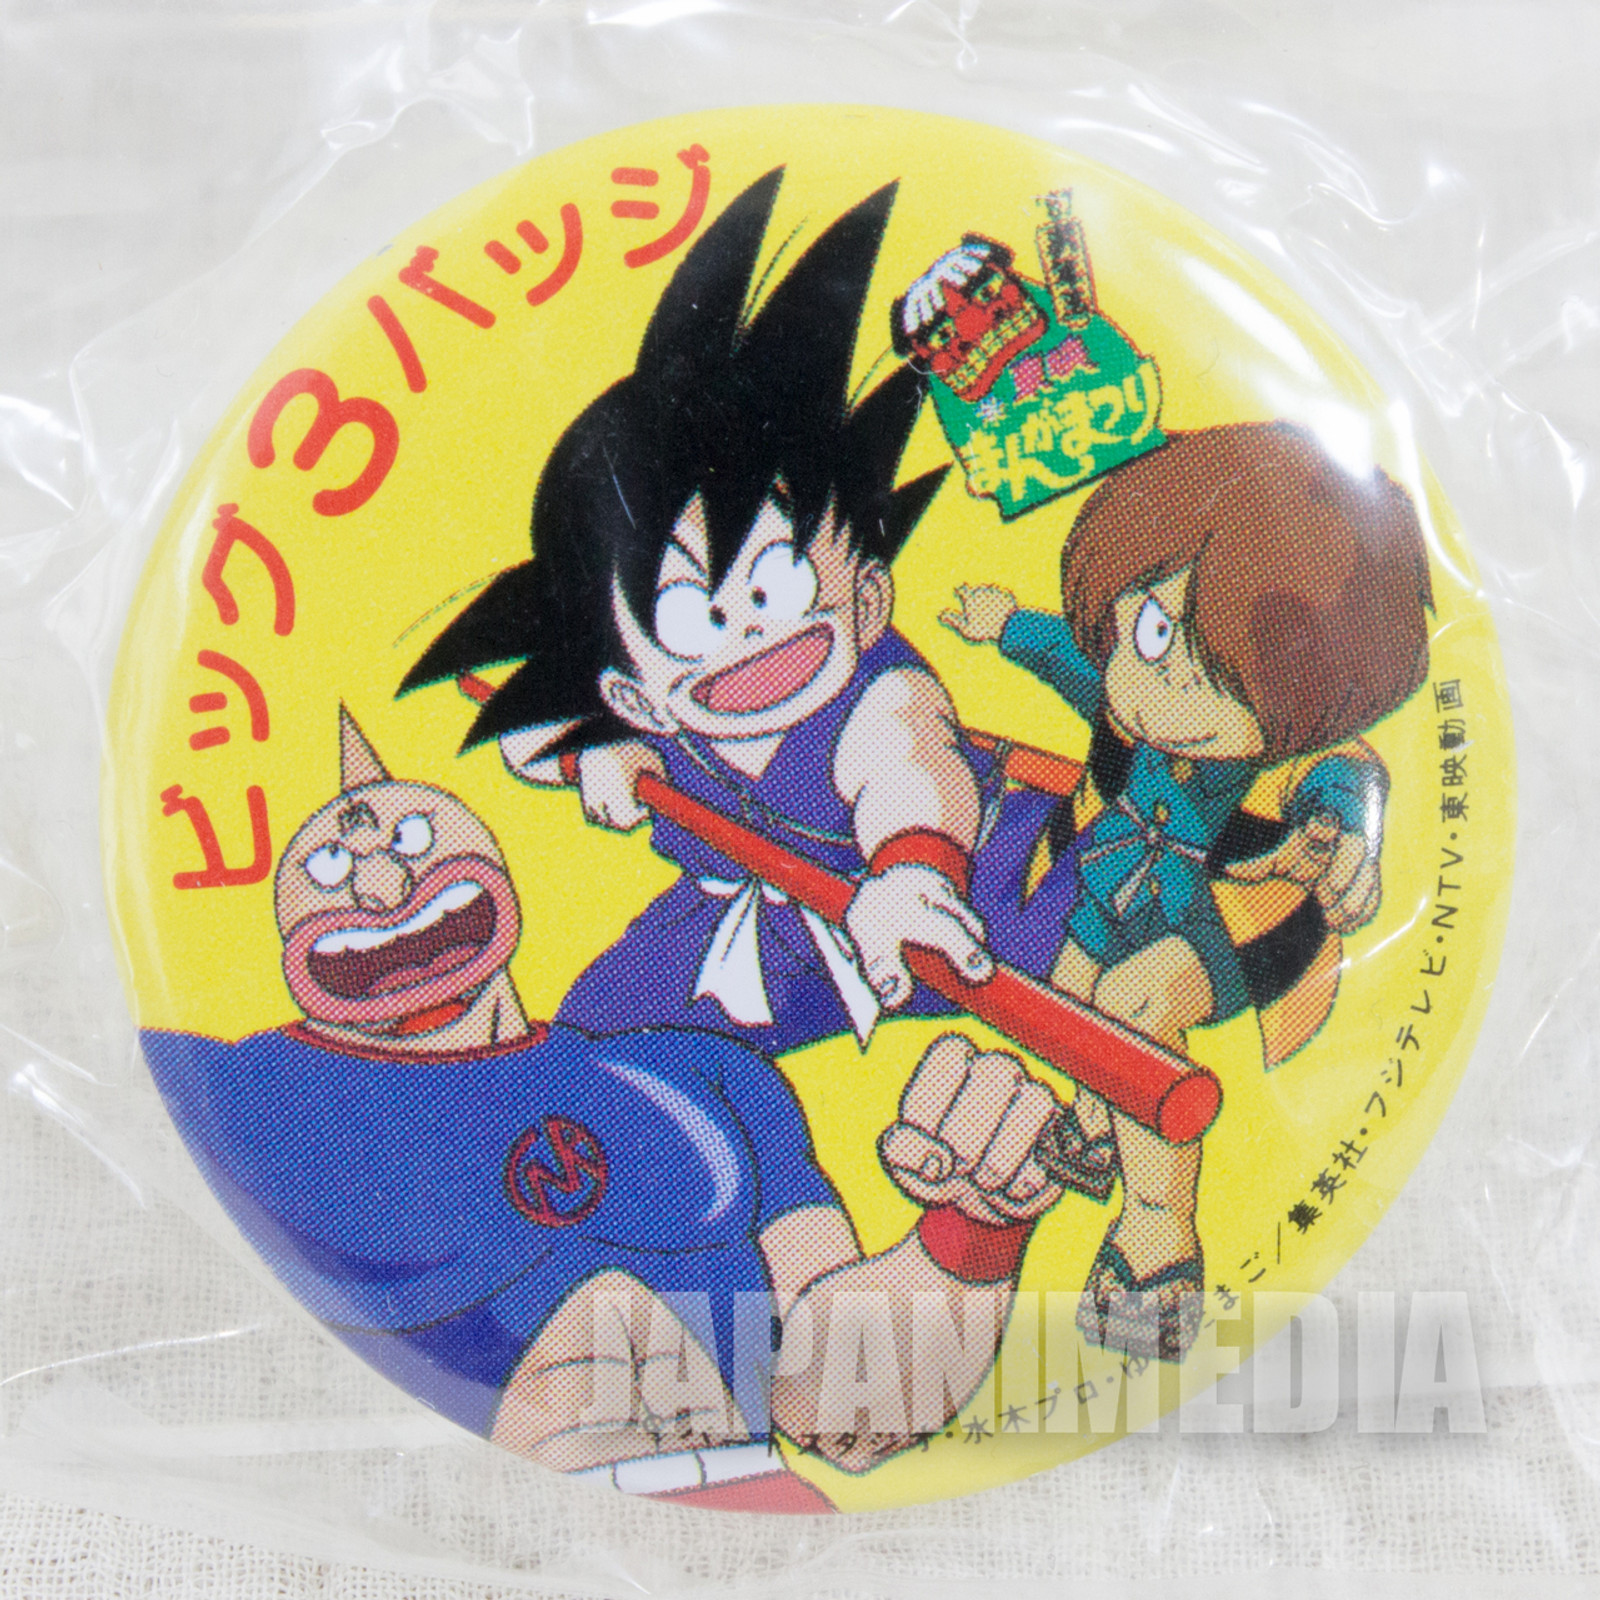 Toei Manga Matsuri 1987 Anime Fair Can Badge Dragonball Kitaro Kinnikuman